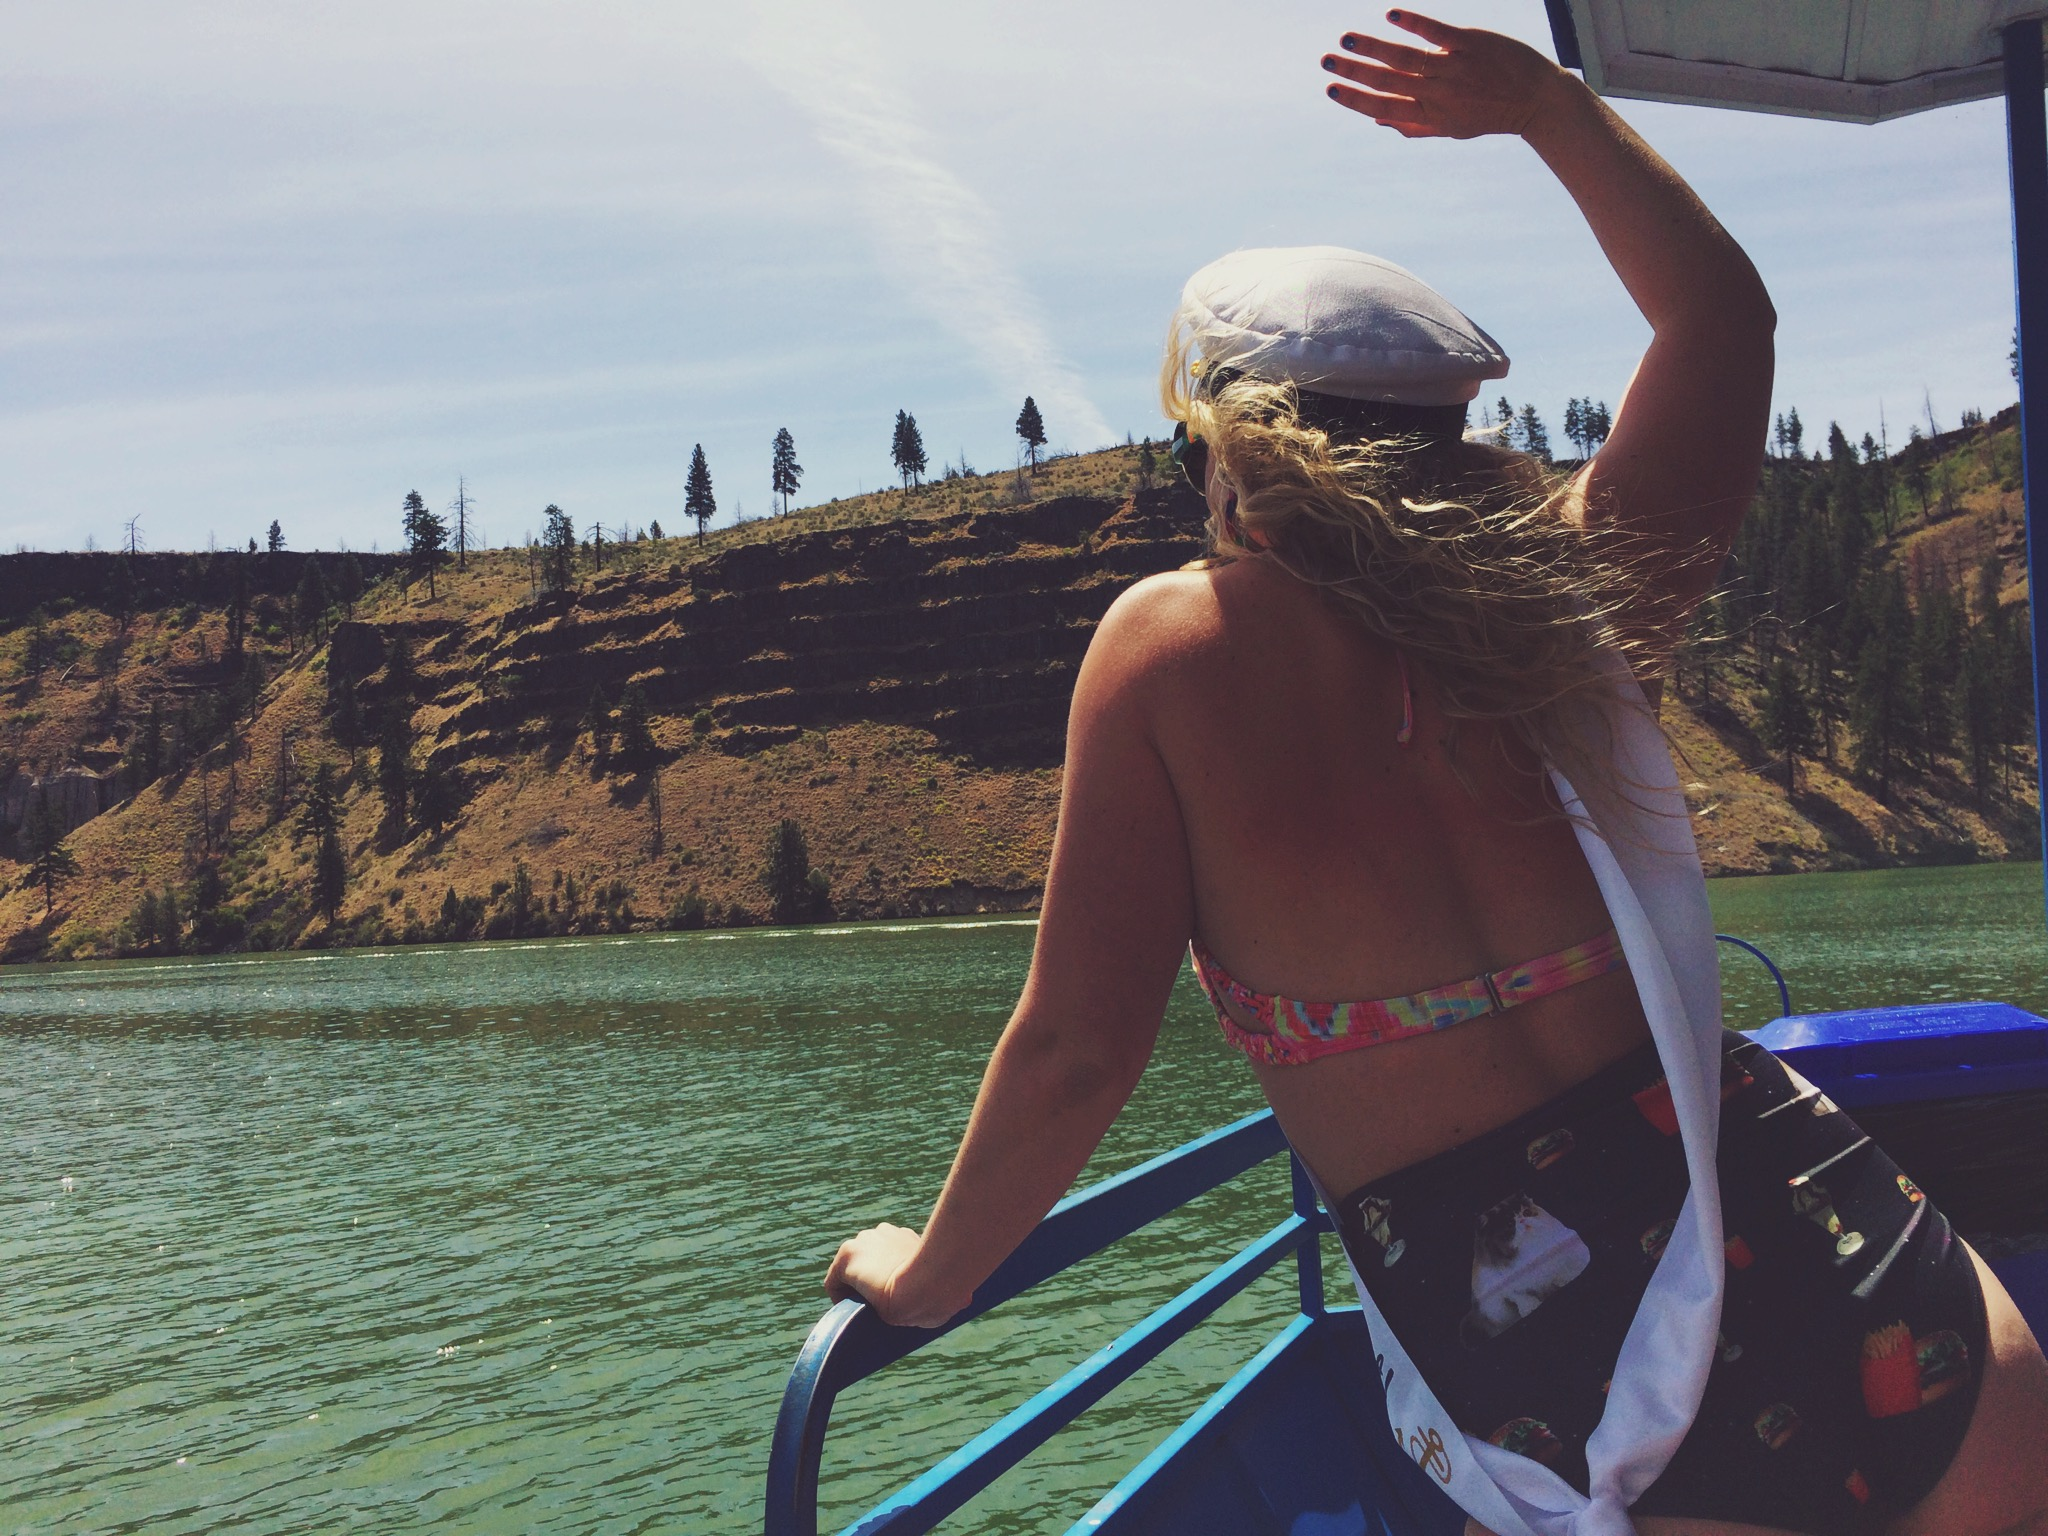 Emily wavin' to those who share the lake with us weirdos